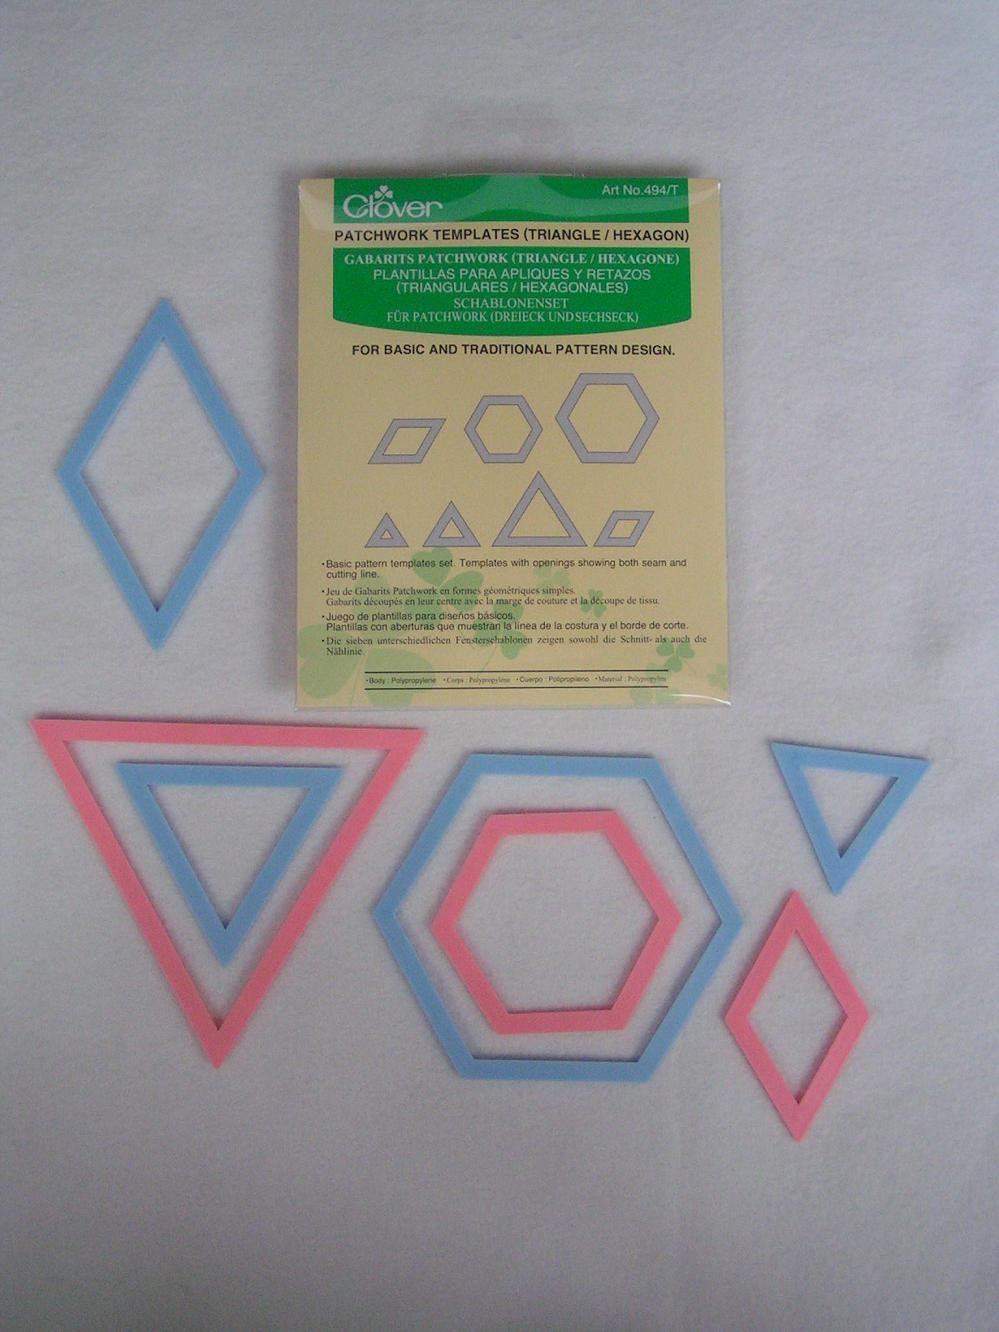 Patchwork templates for English paper piecing hexagons triangles ...